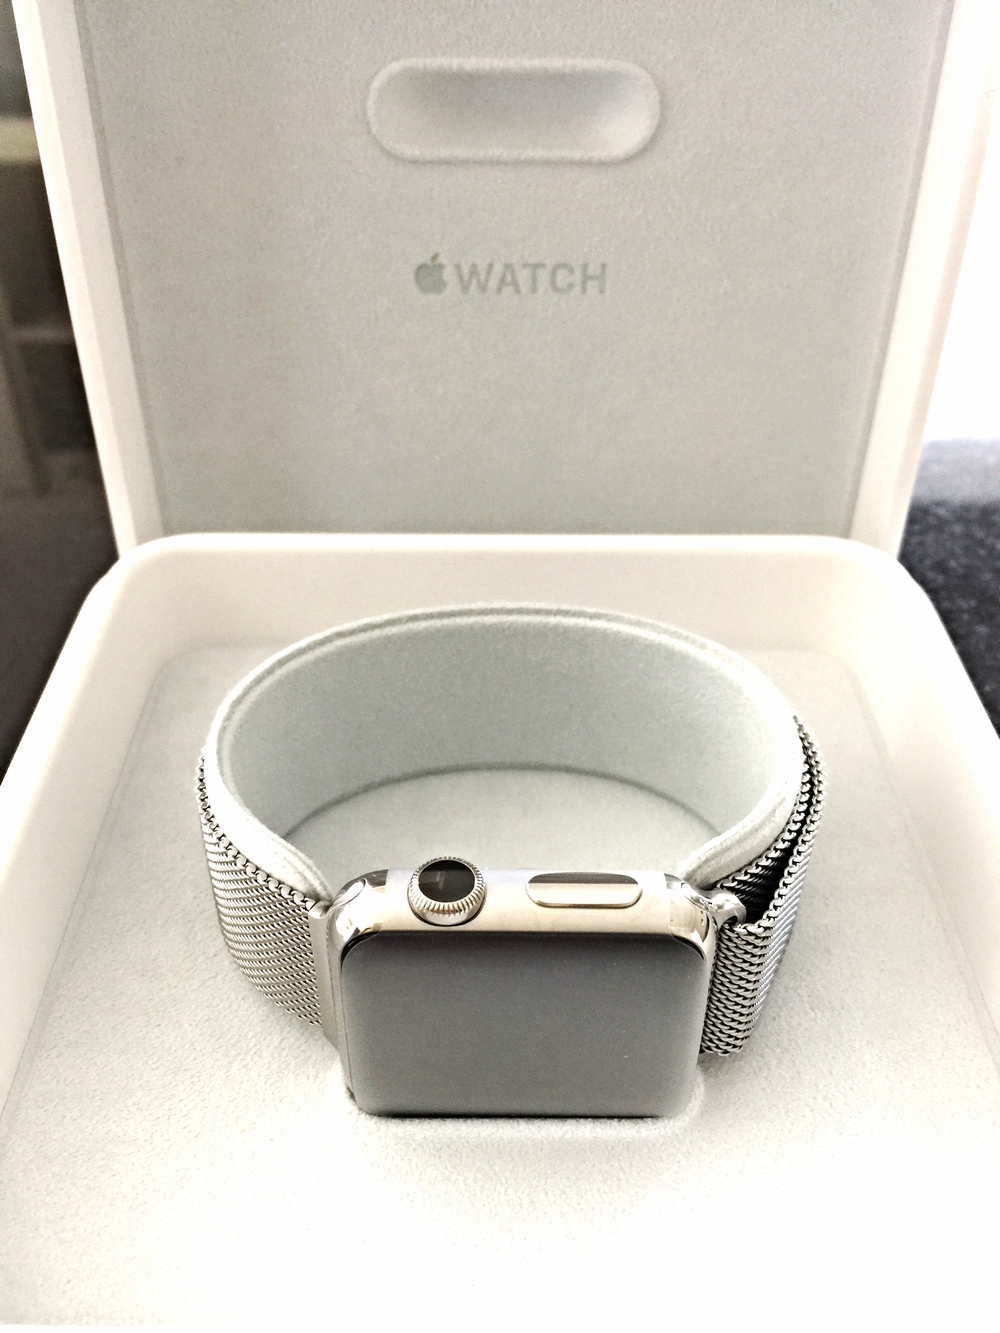 Applewatch box